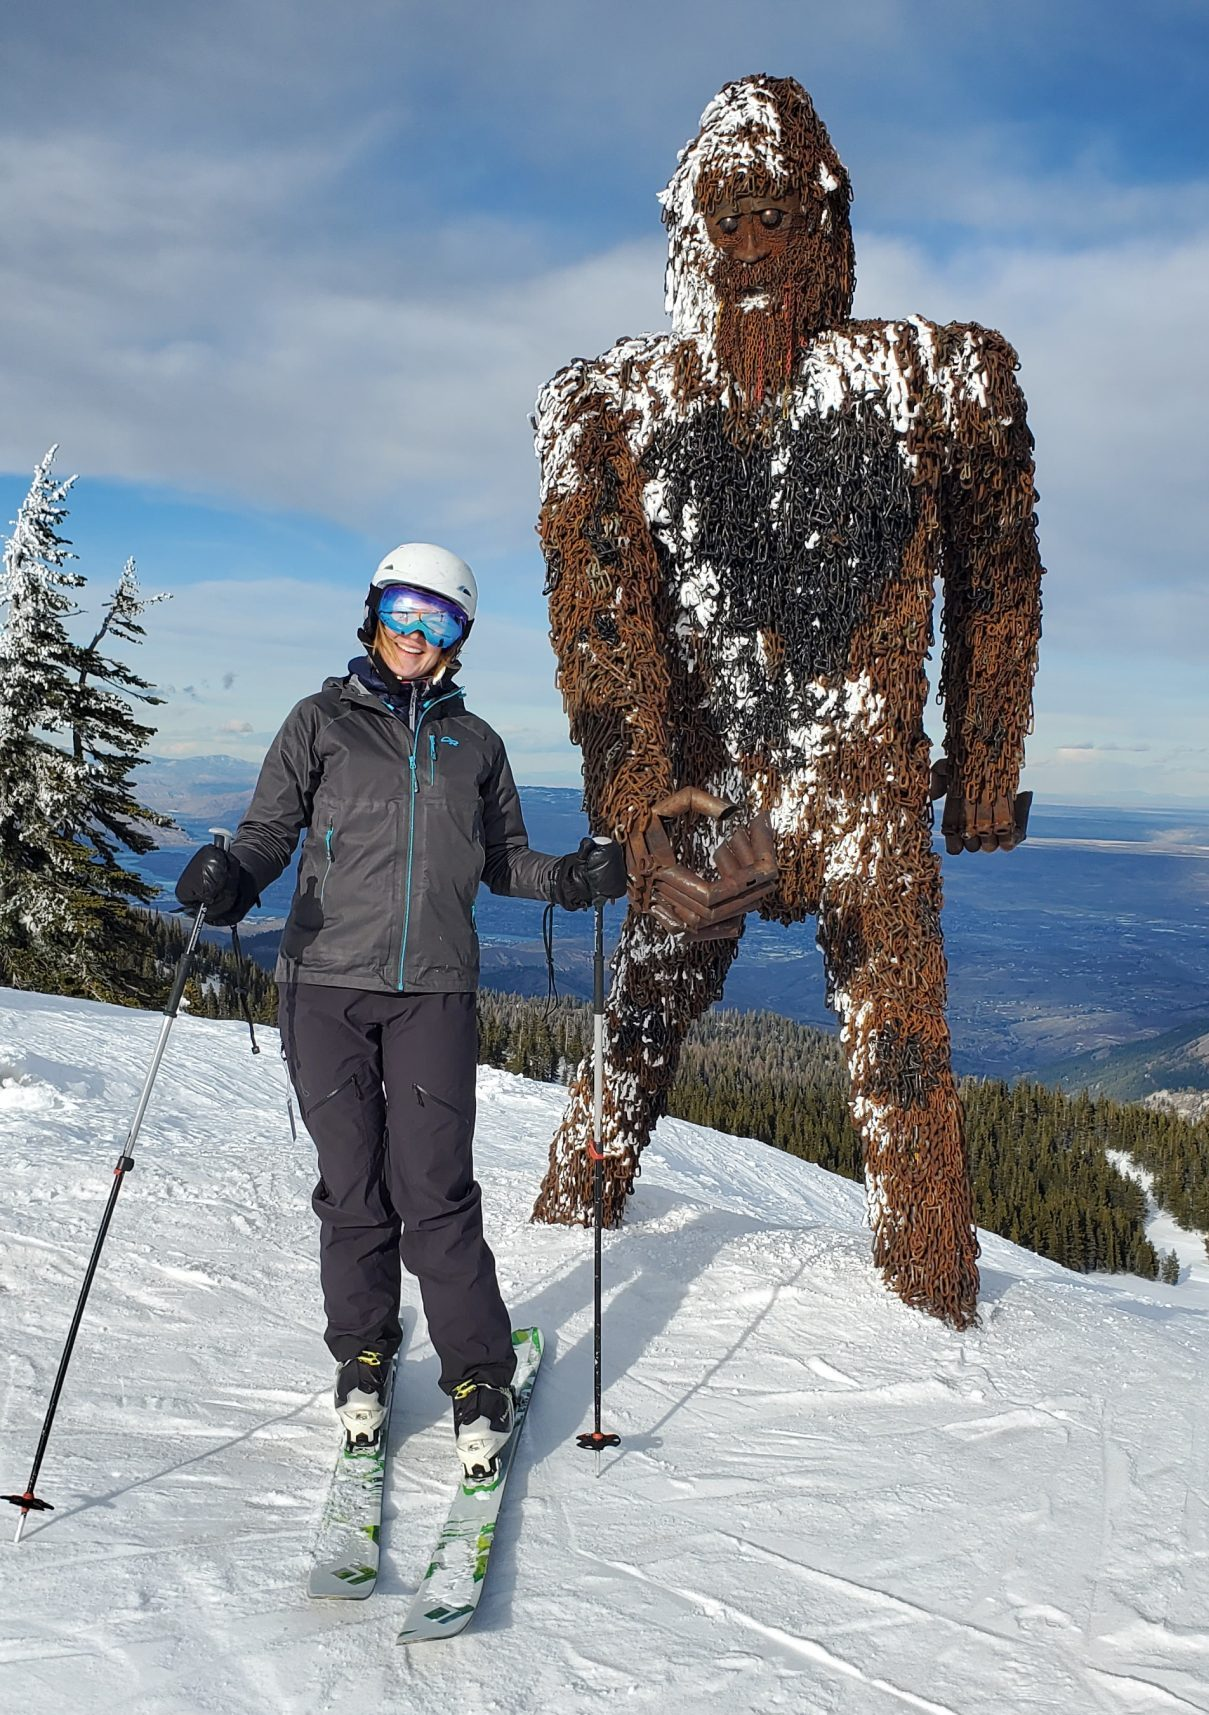 woman on skis standing in front of a very tall yeti sculpture at the top of mission ridge ski area